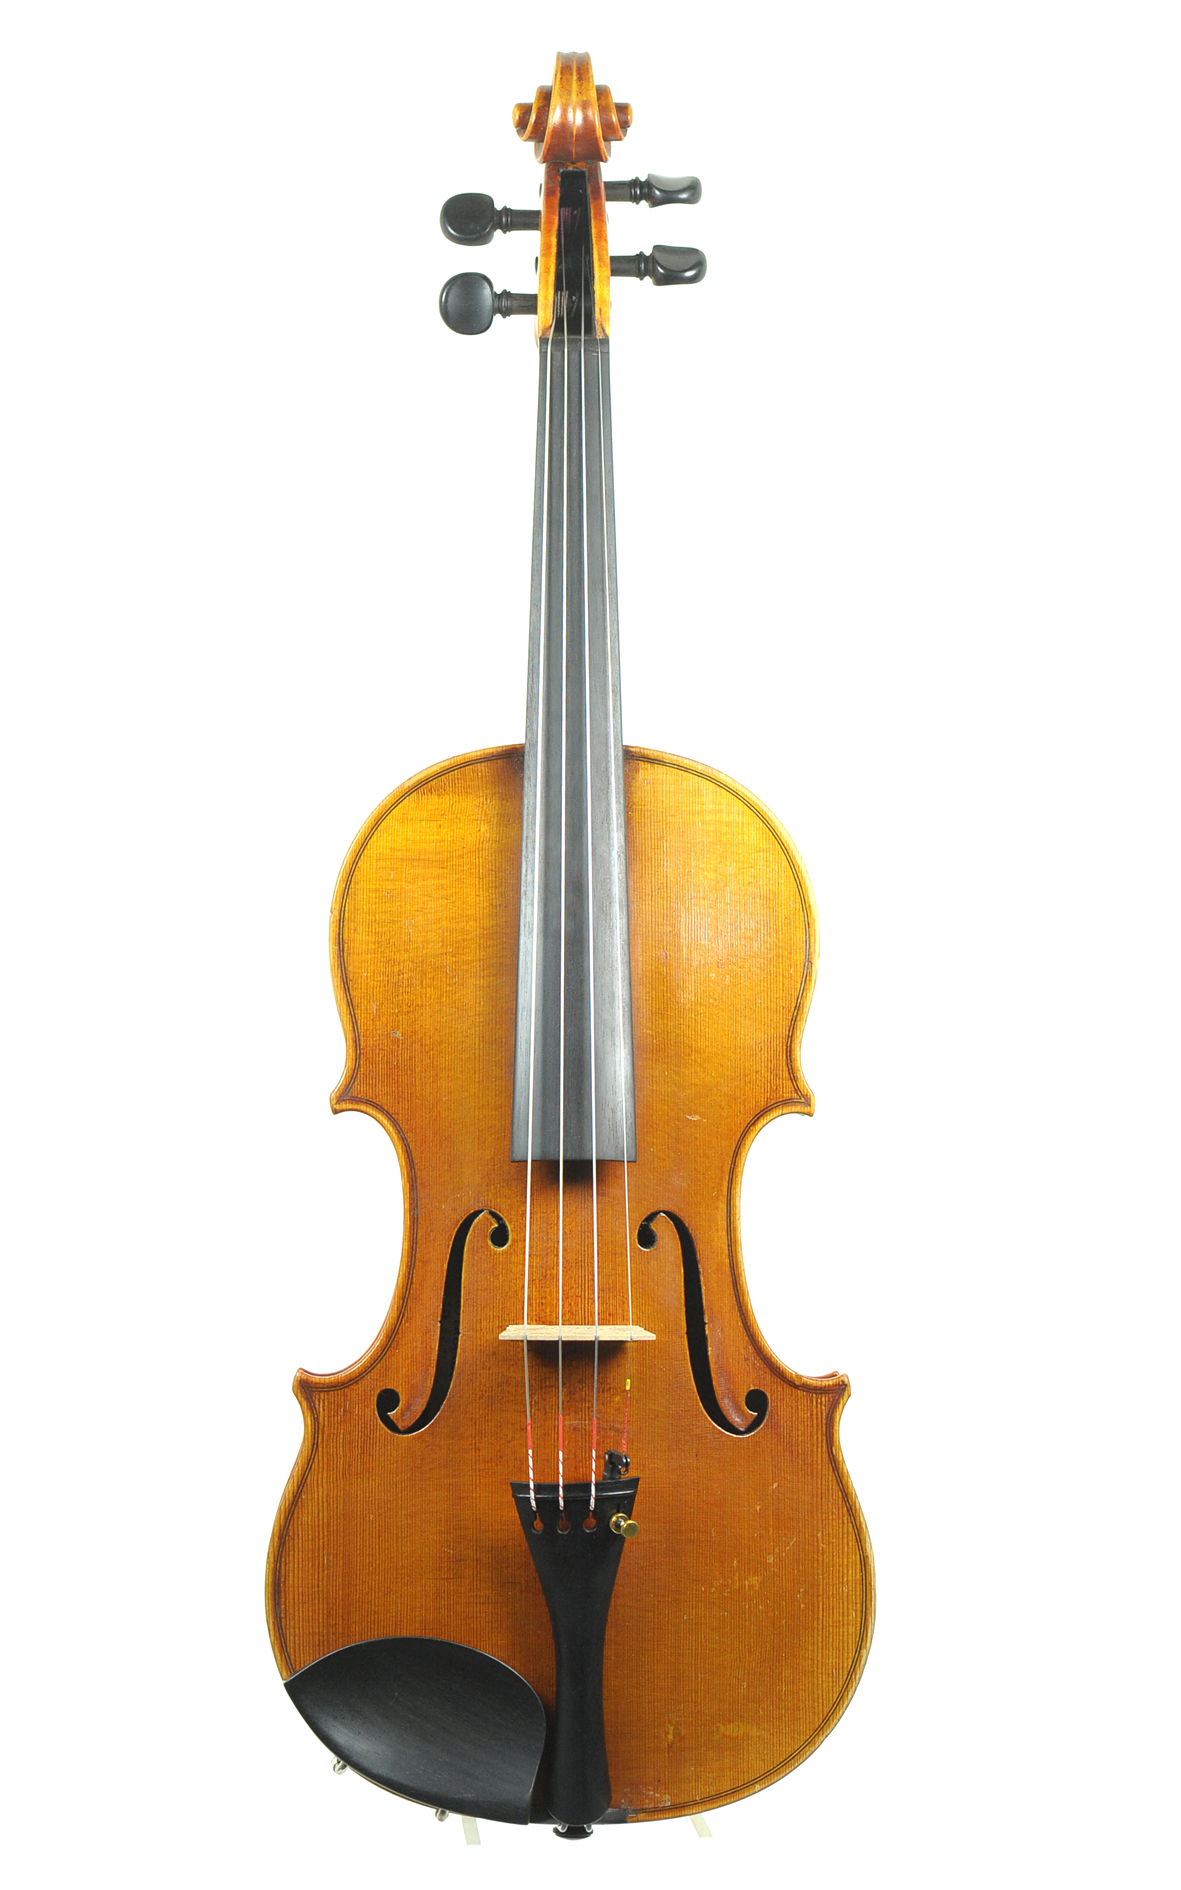 Ernst Heinrich Roth workshop violin, made in Bubenreuth 1962